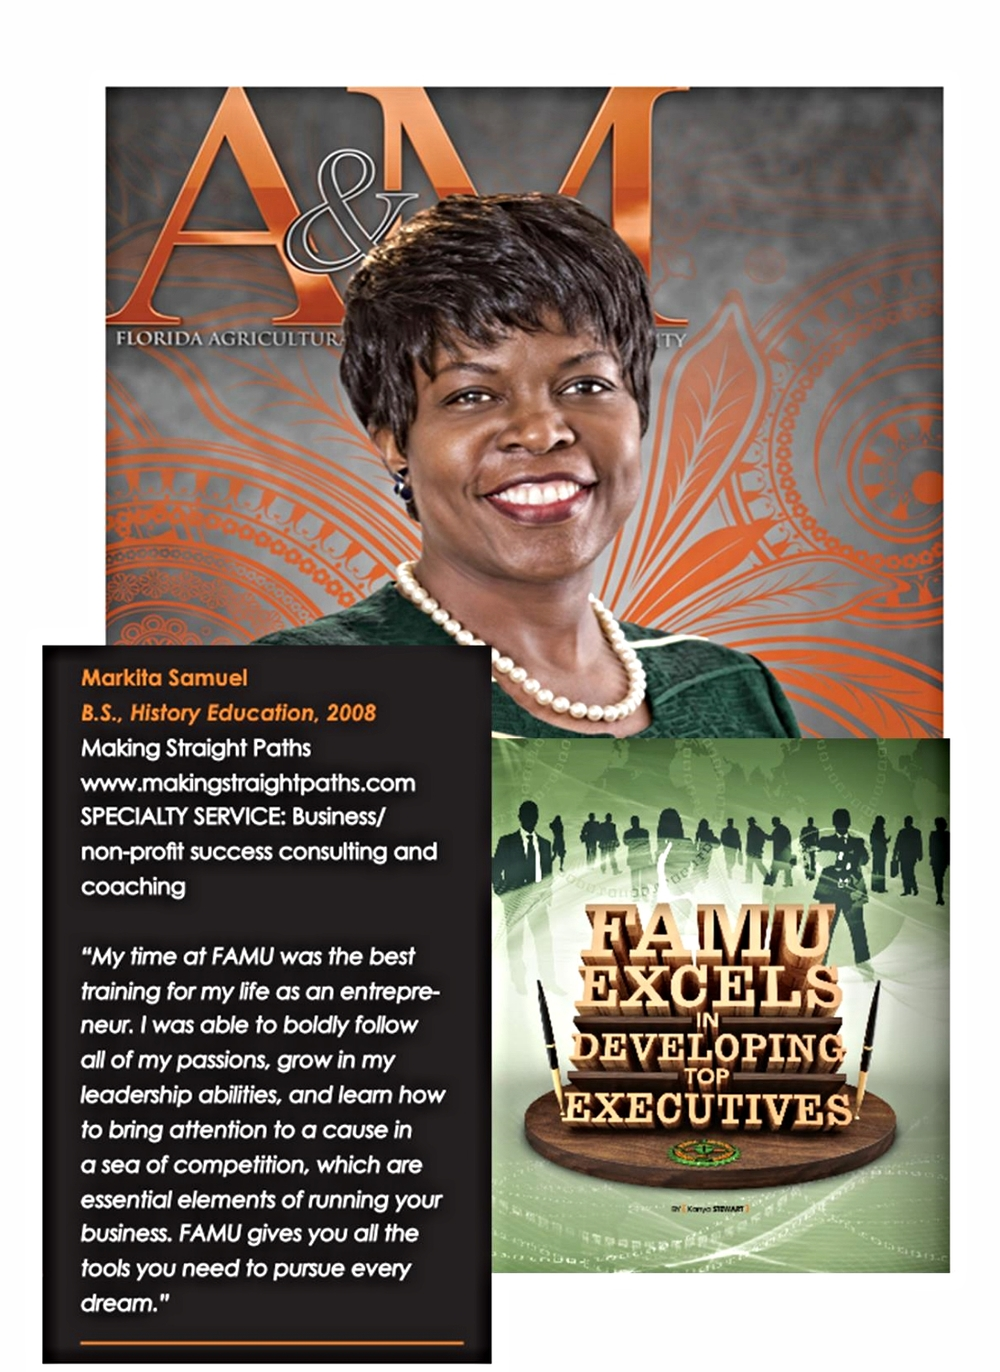 It was SUCH and honor to be featured in the FAMU Alumni Magazine! FAMU is where it all really began...